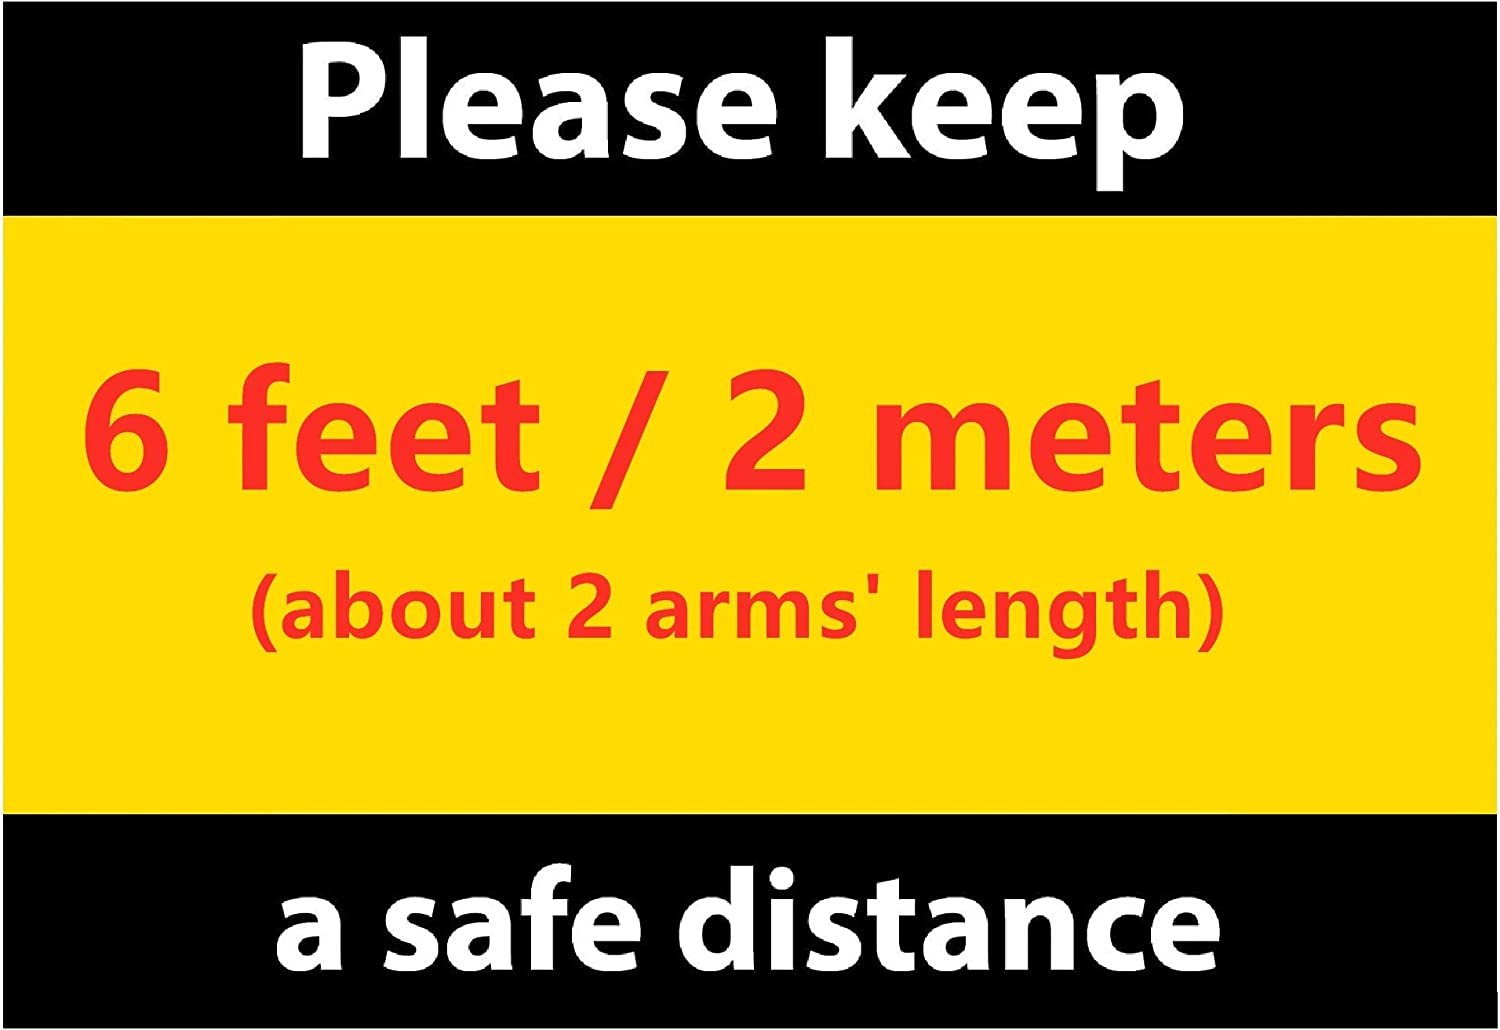 1RHC01 Keep Social Distance Sign 177.8/×254mm Minimum Safe Physical Distance Label 7x10/″ Case of 50 Practice Social Distancing Decal Self-Adhesive Vinyl PVC Sticker for Distant Socializing